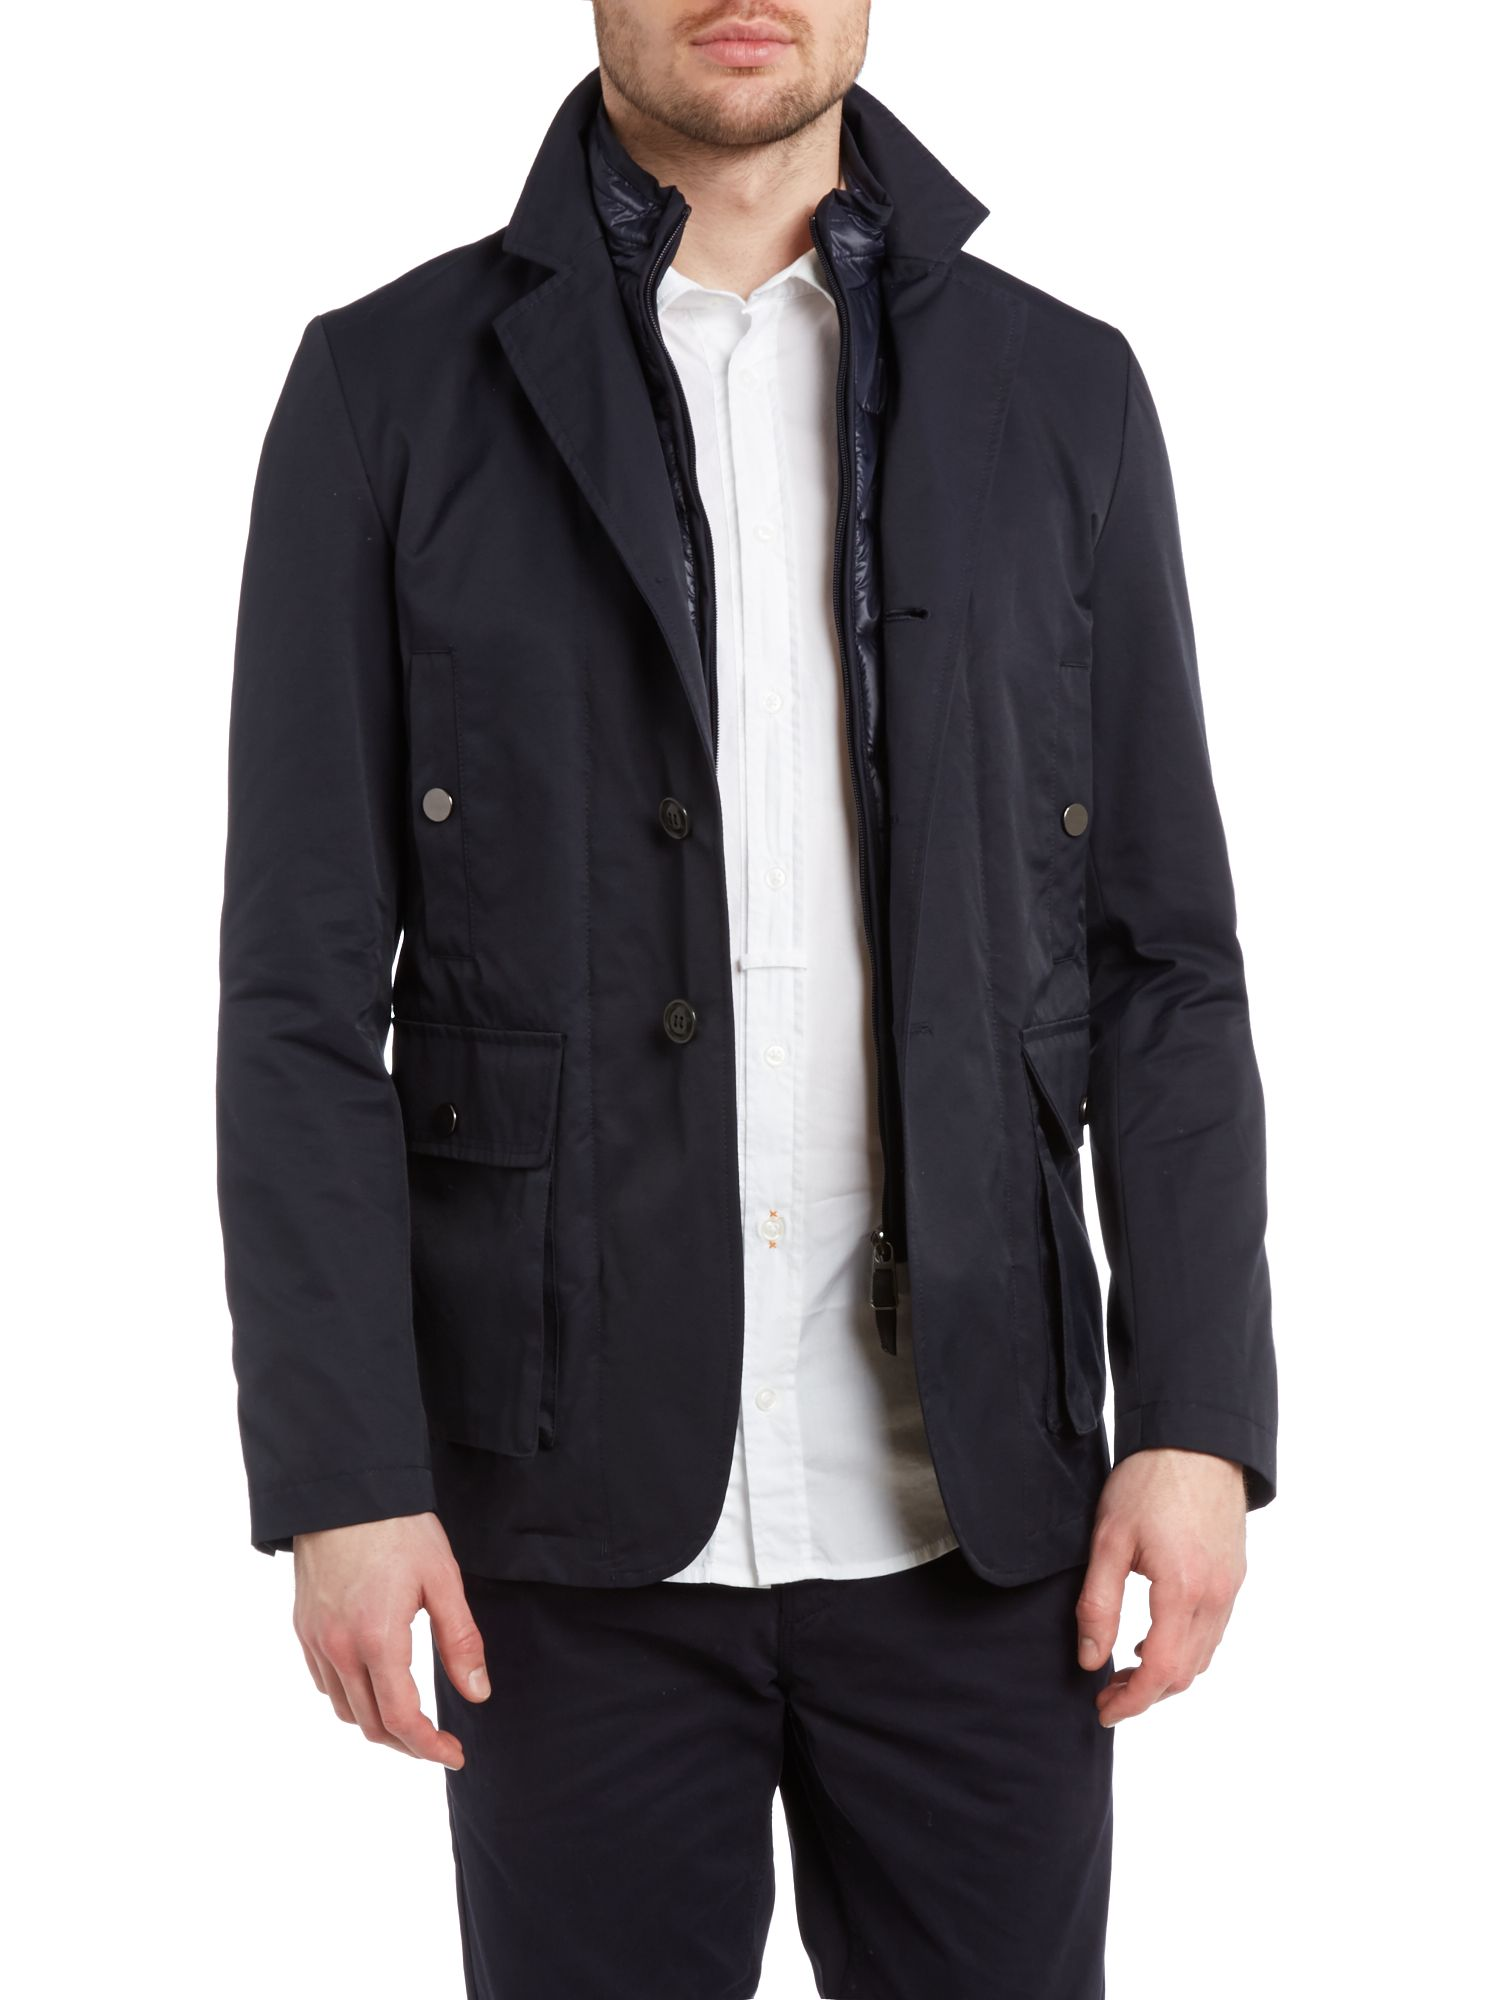 Roger duffel coat with inner jacket